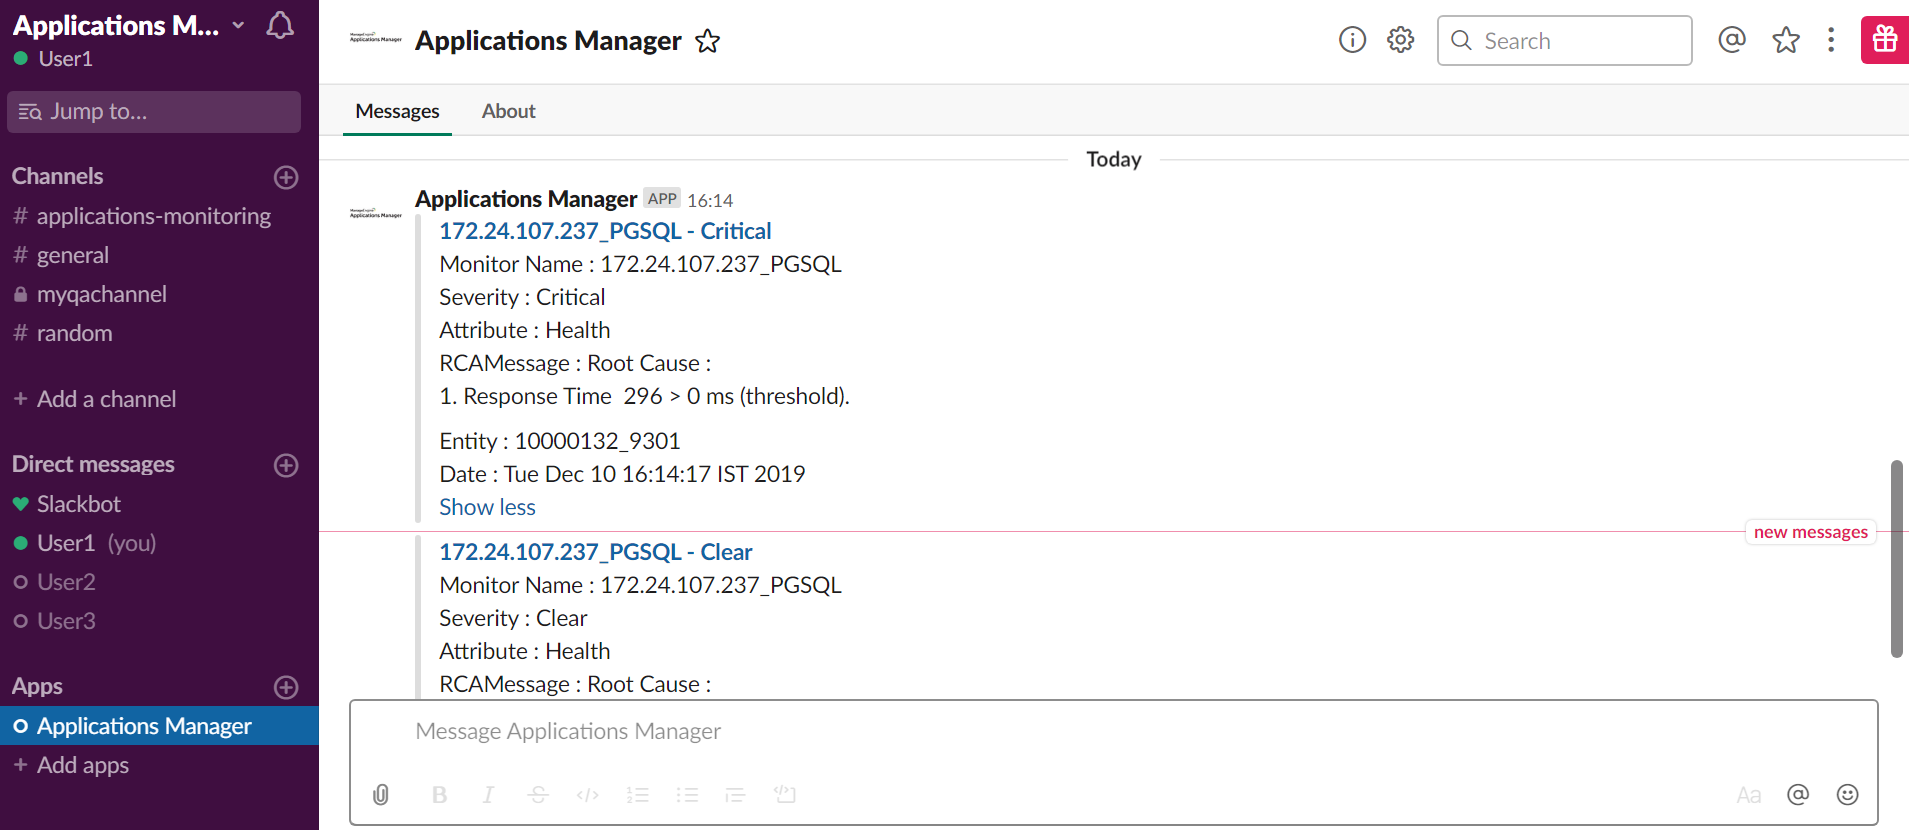 Integrate Slack with Applications Manager